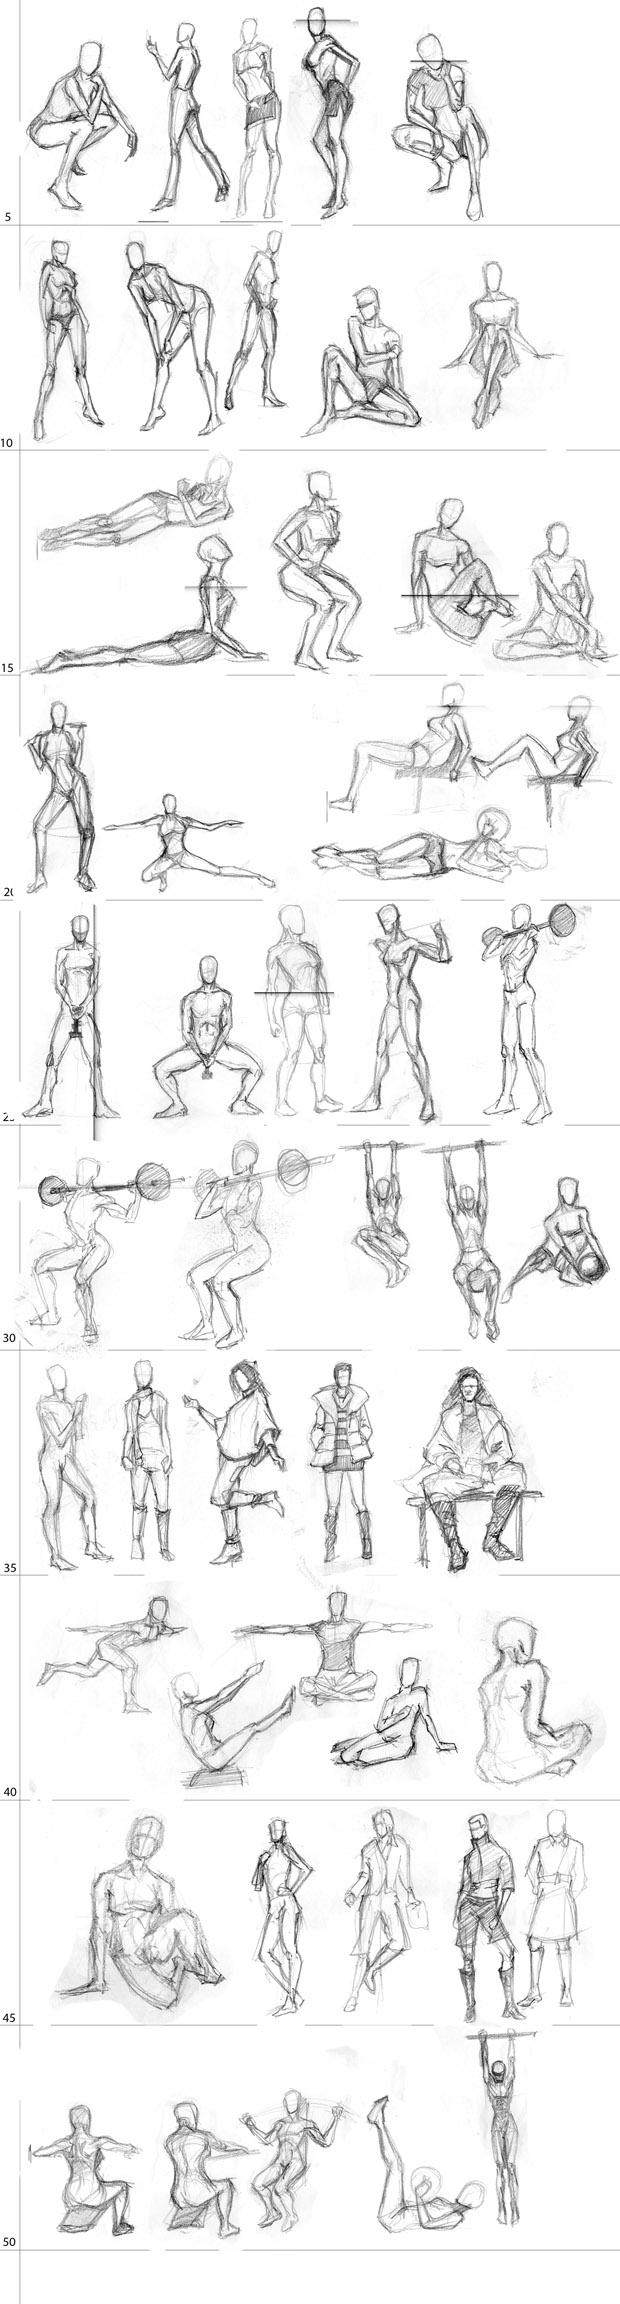 "Spartan Camp #28 - 50 gestures + Optional Study of Action ""Dancing"""